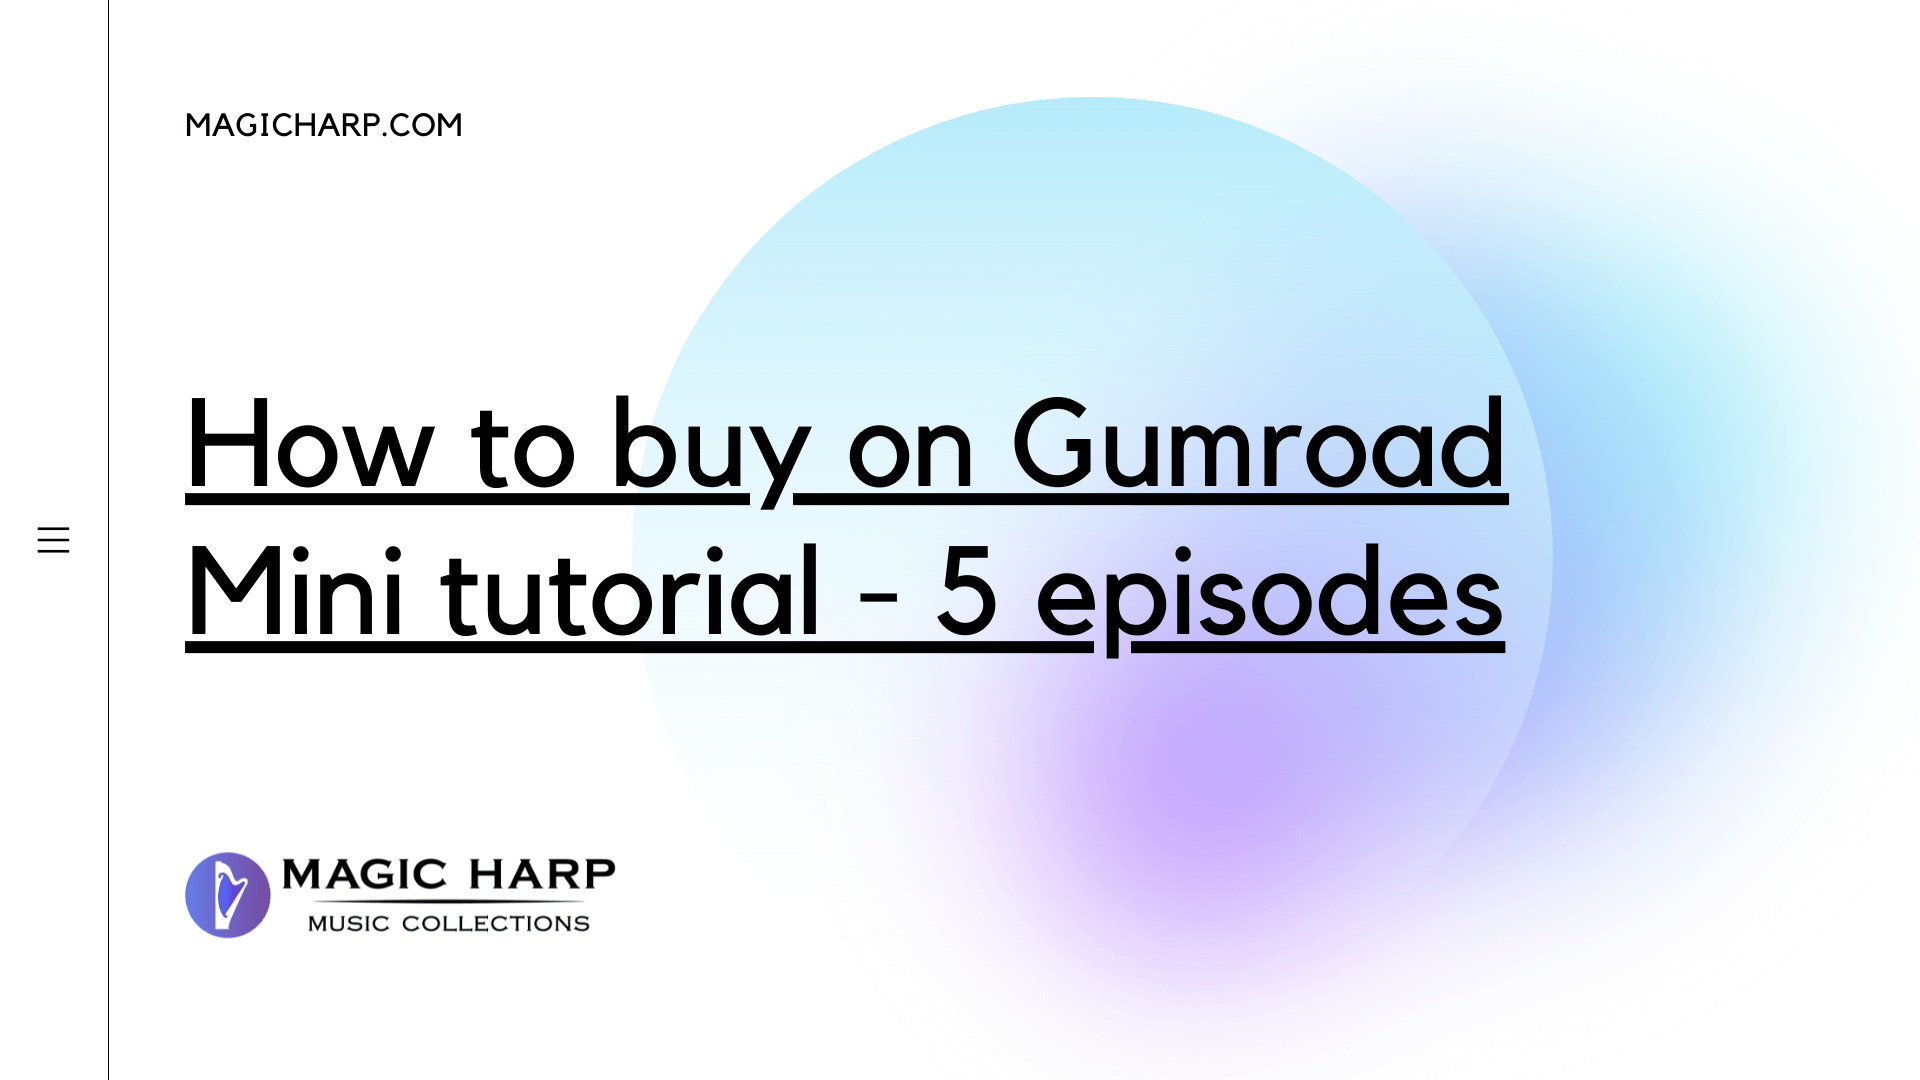 How to buy on Gumroad - Mini tutorial - 5 episodes